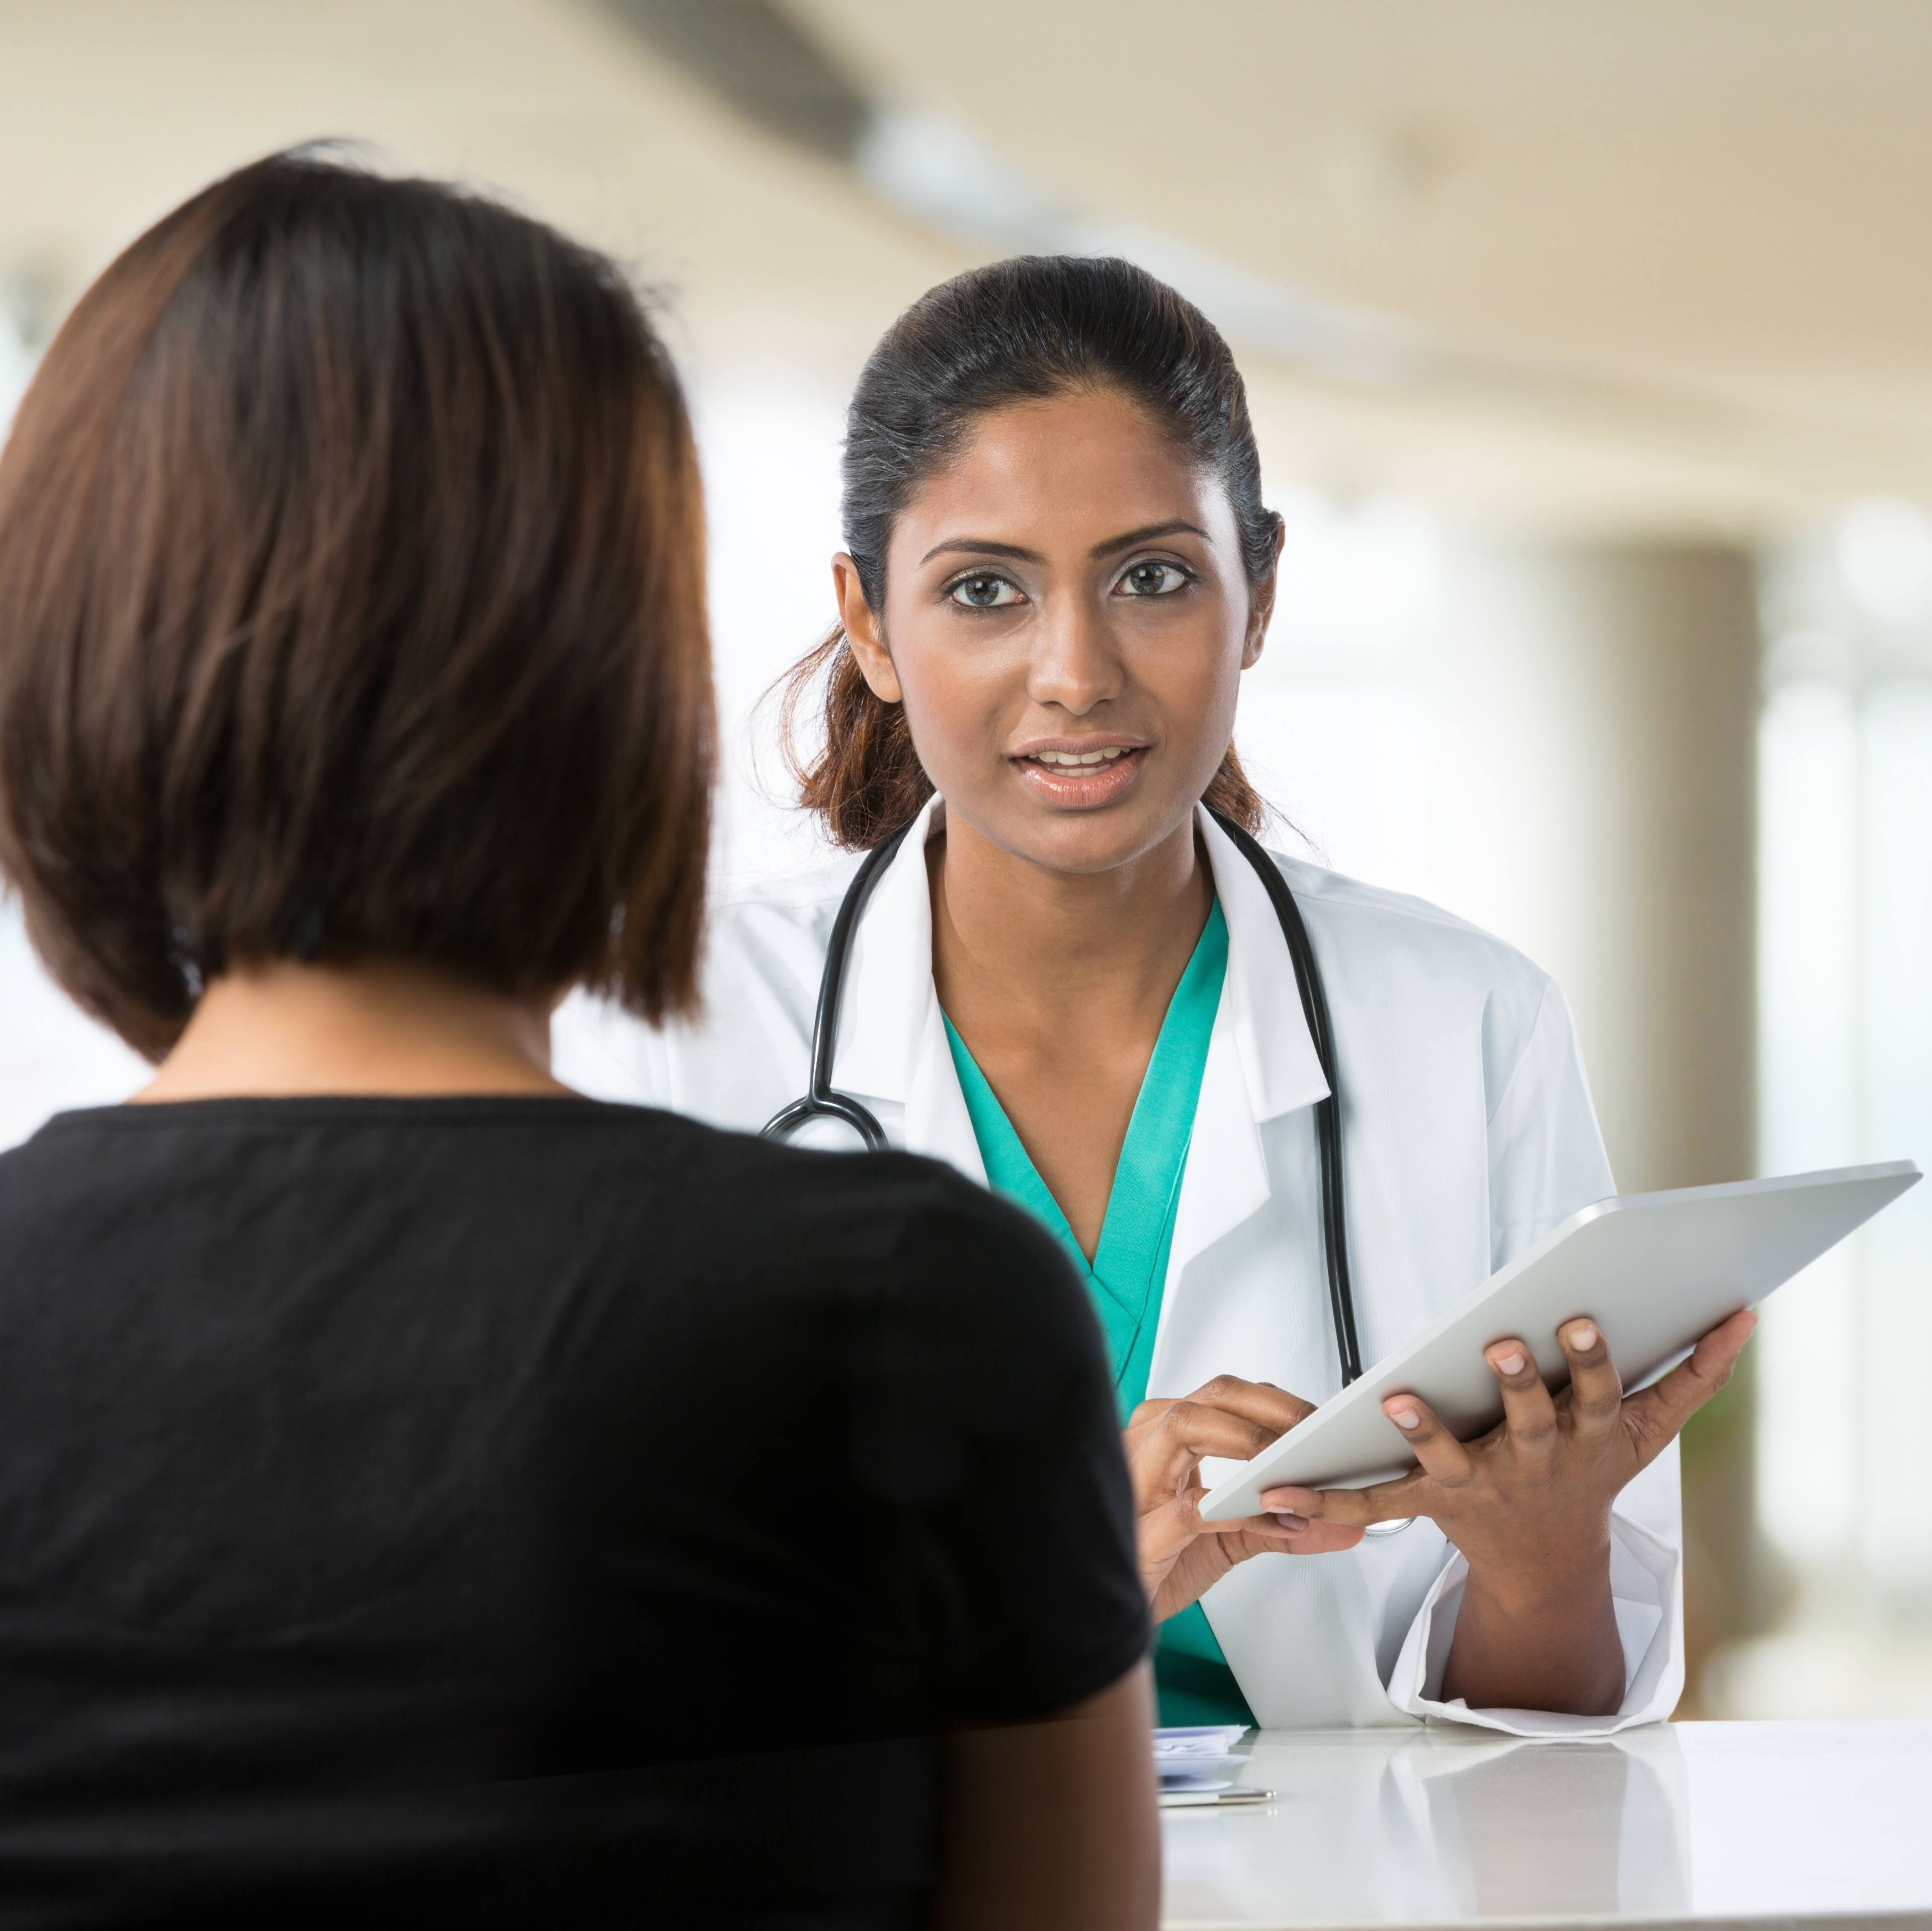 doctor talking with female patient in doctors office